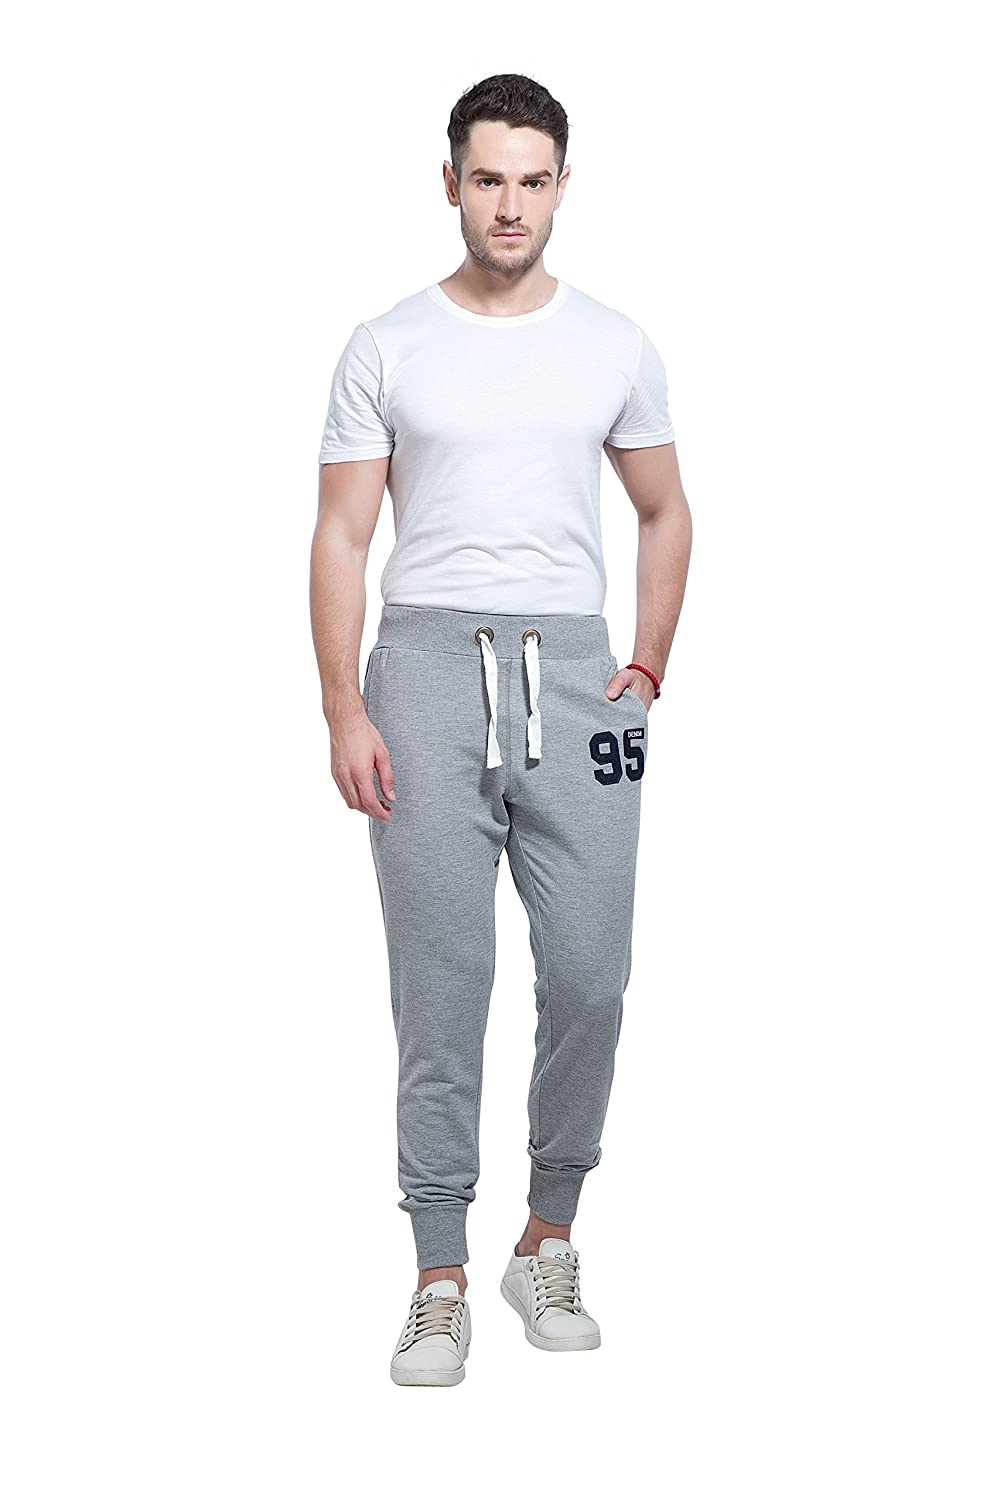 b784d6961c11e Alan Jones Clothing Men's Cotton Slim Fit Joggers: Amazon.in: Clothing &  Accessories